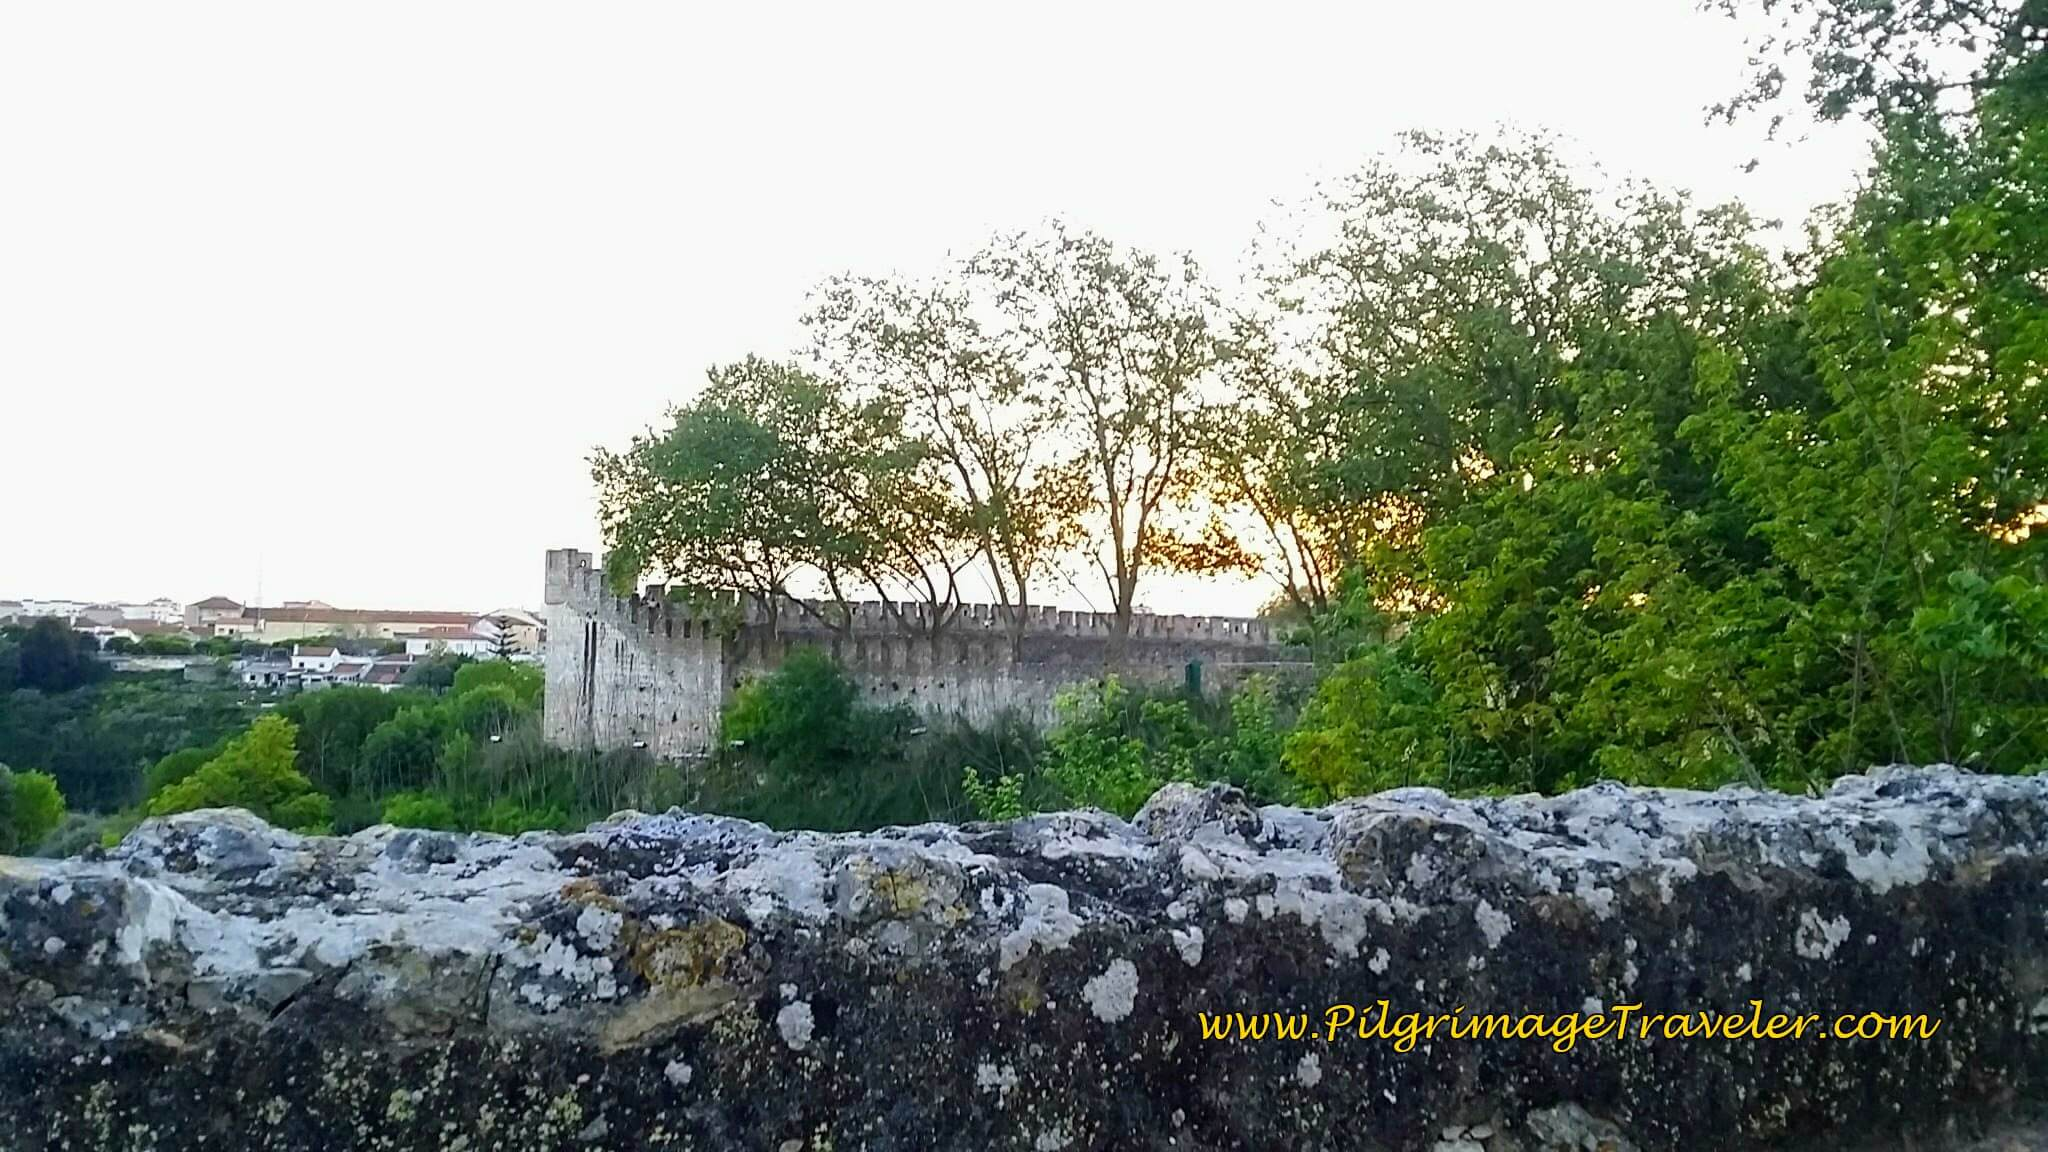 The Old Walls of Santarém, Portugal